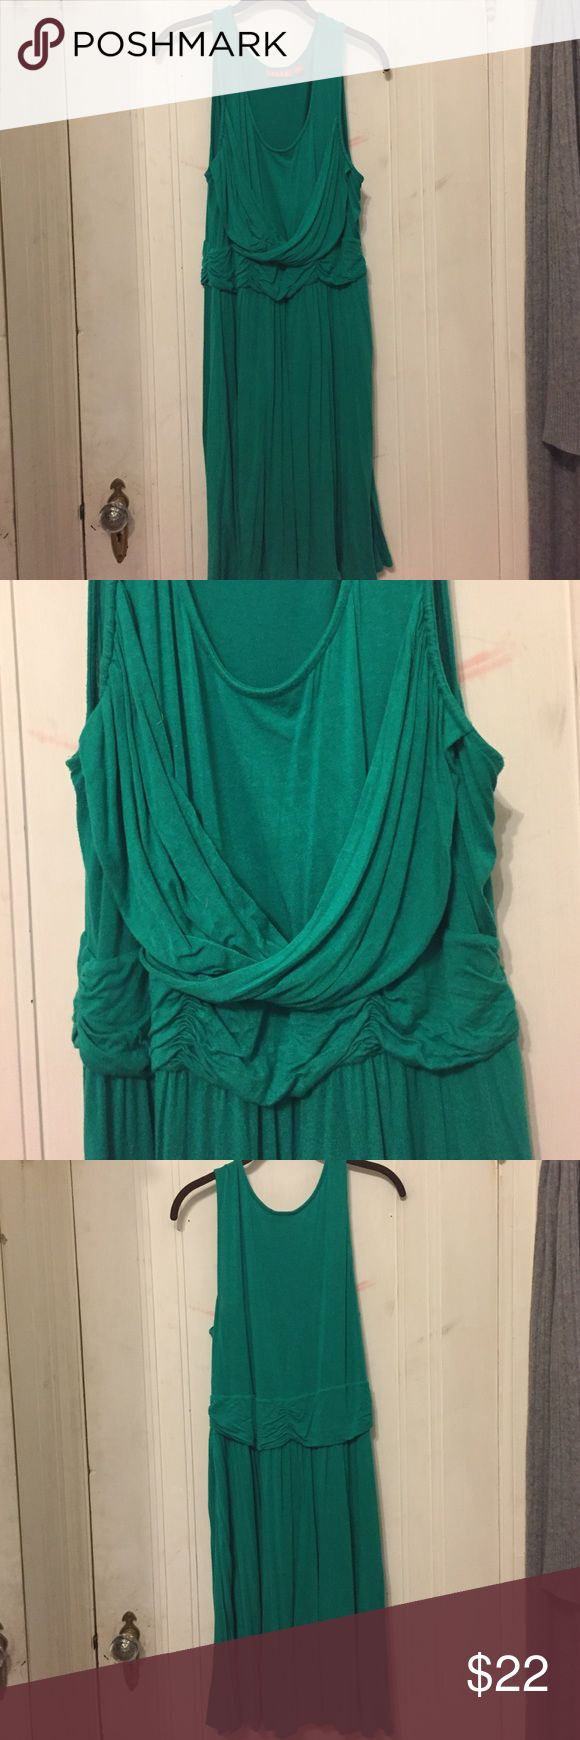 Kelly Green Dress This Kelly green dress feels just like a comfy t-shirt or pajamas. Greek goddess styling at the waist offer a waist defining silhouette. Elle Dresses